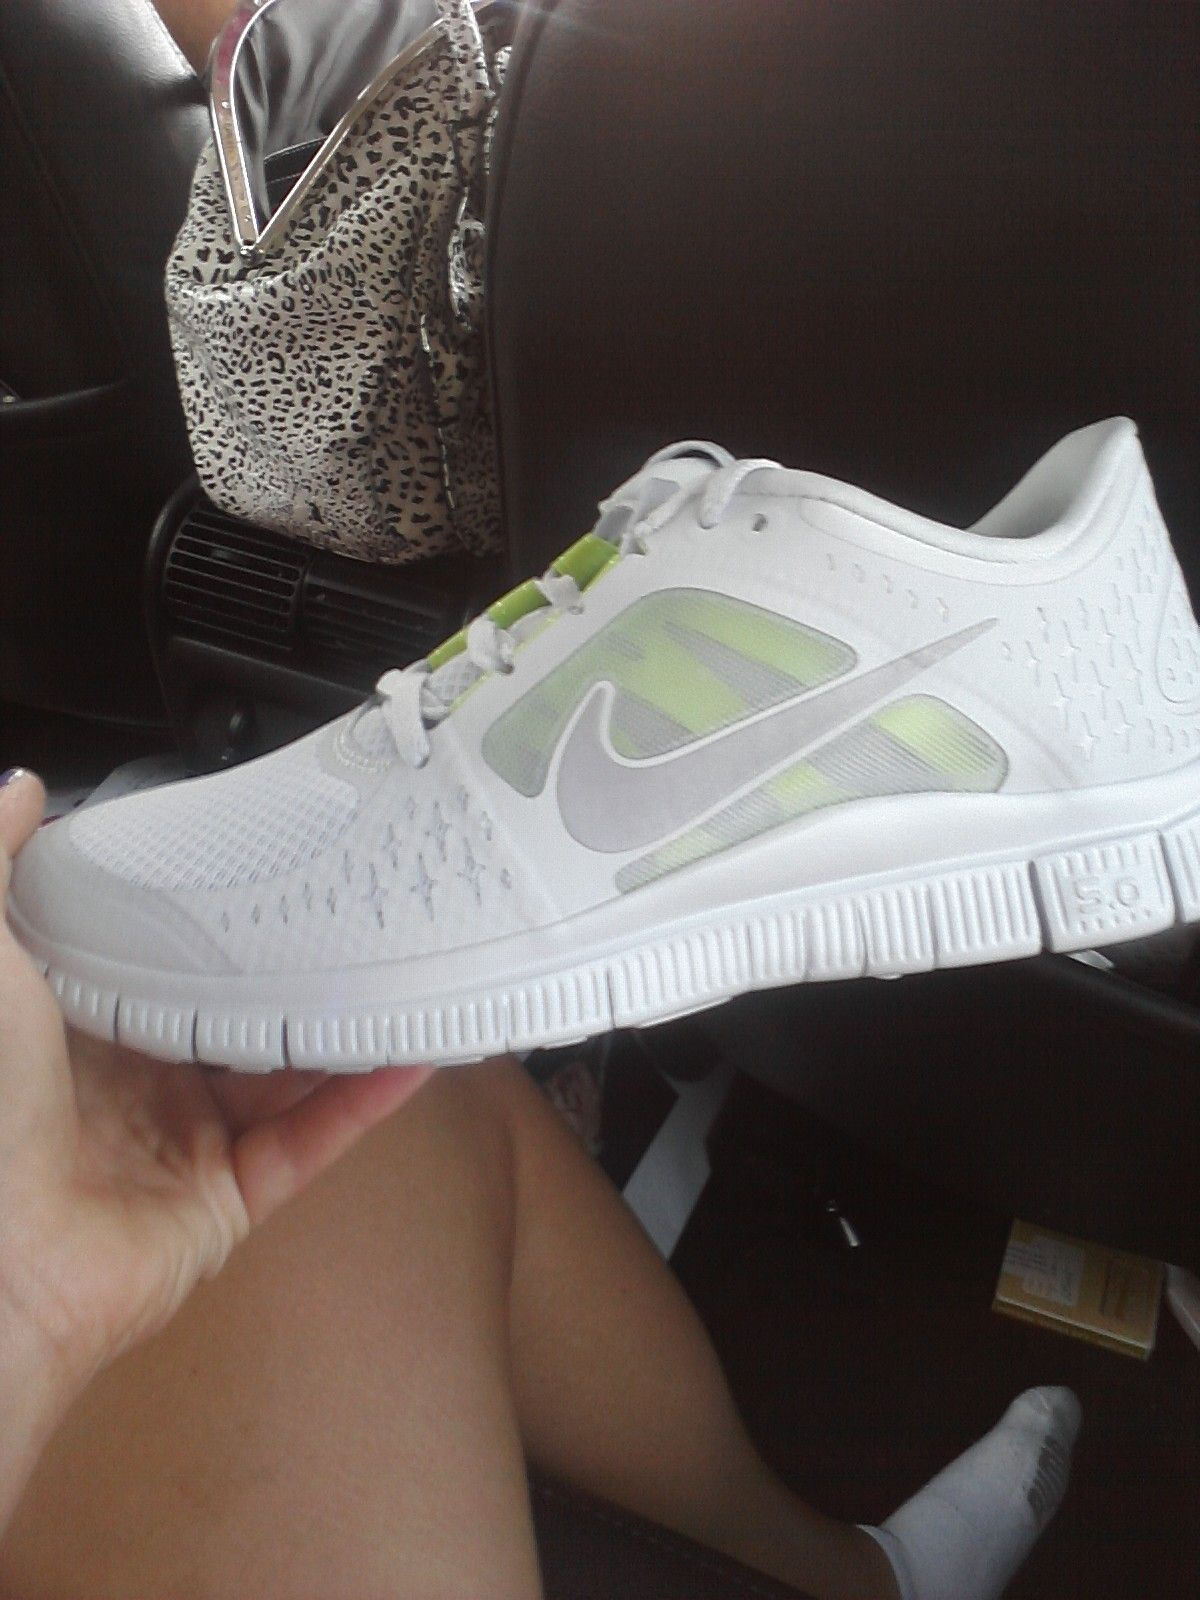 My new Nikes! I needed a good running shoe and these are the best I ... 10787ebc16e